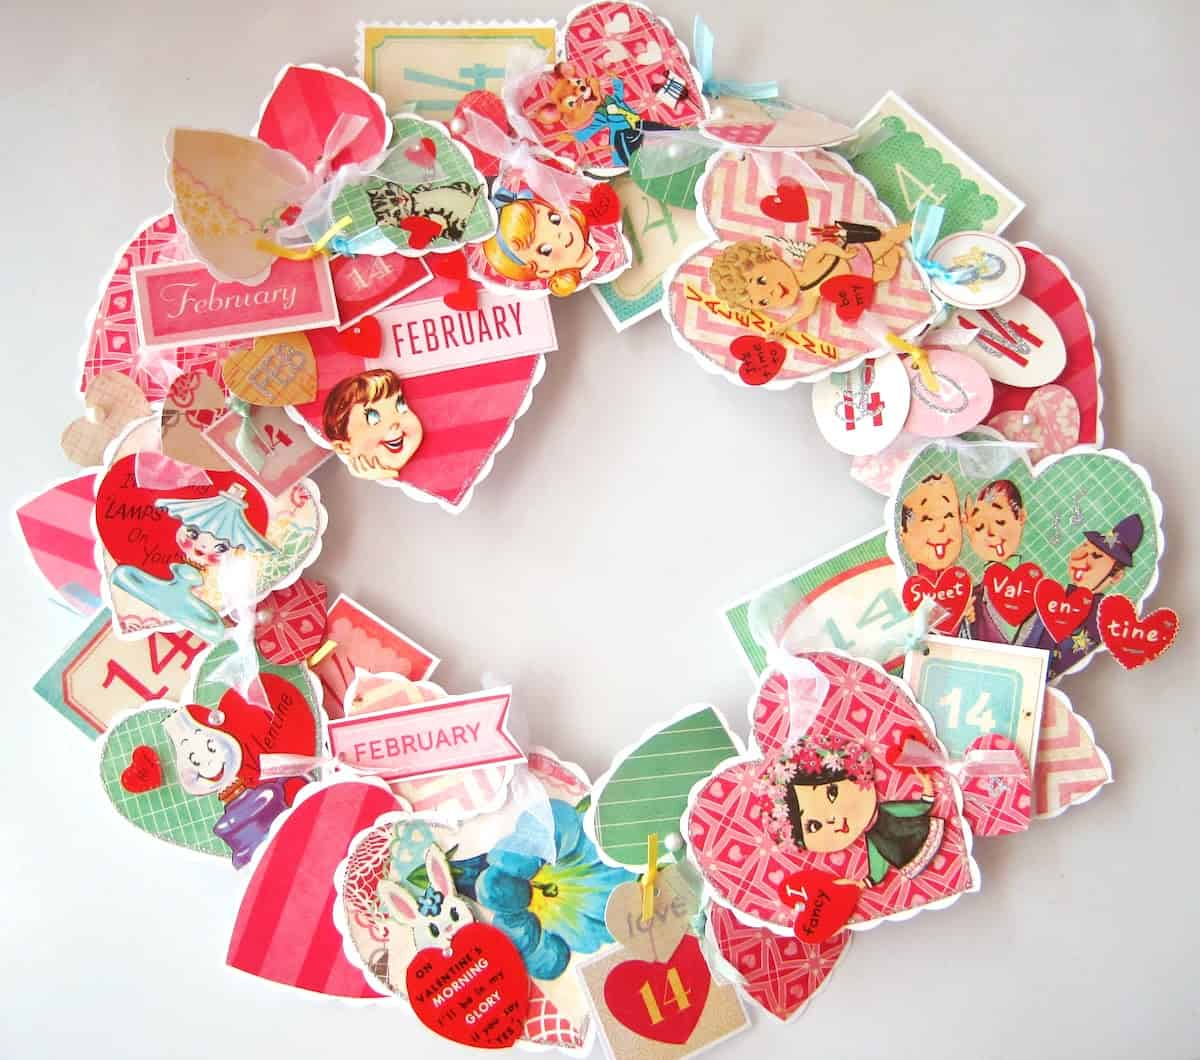 recycled greeting cards wreath